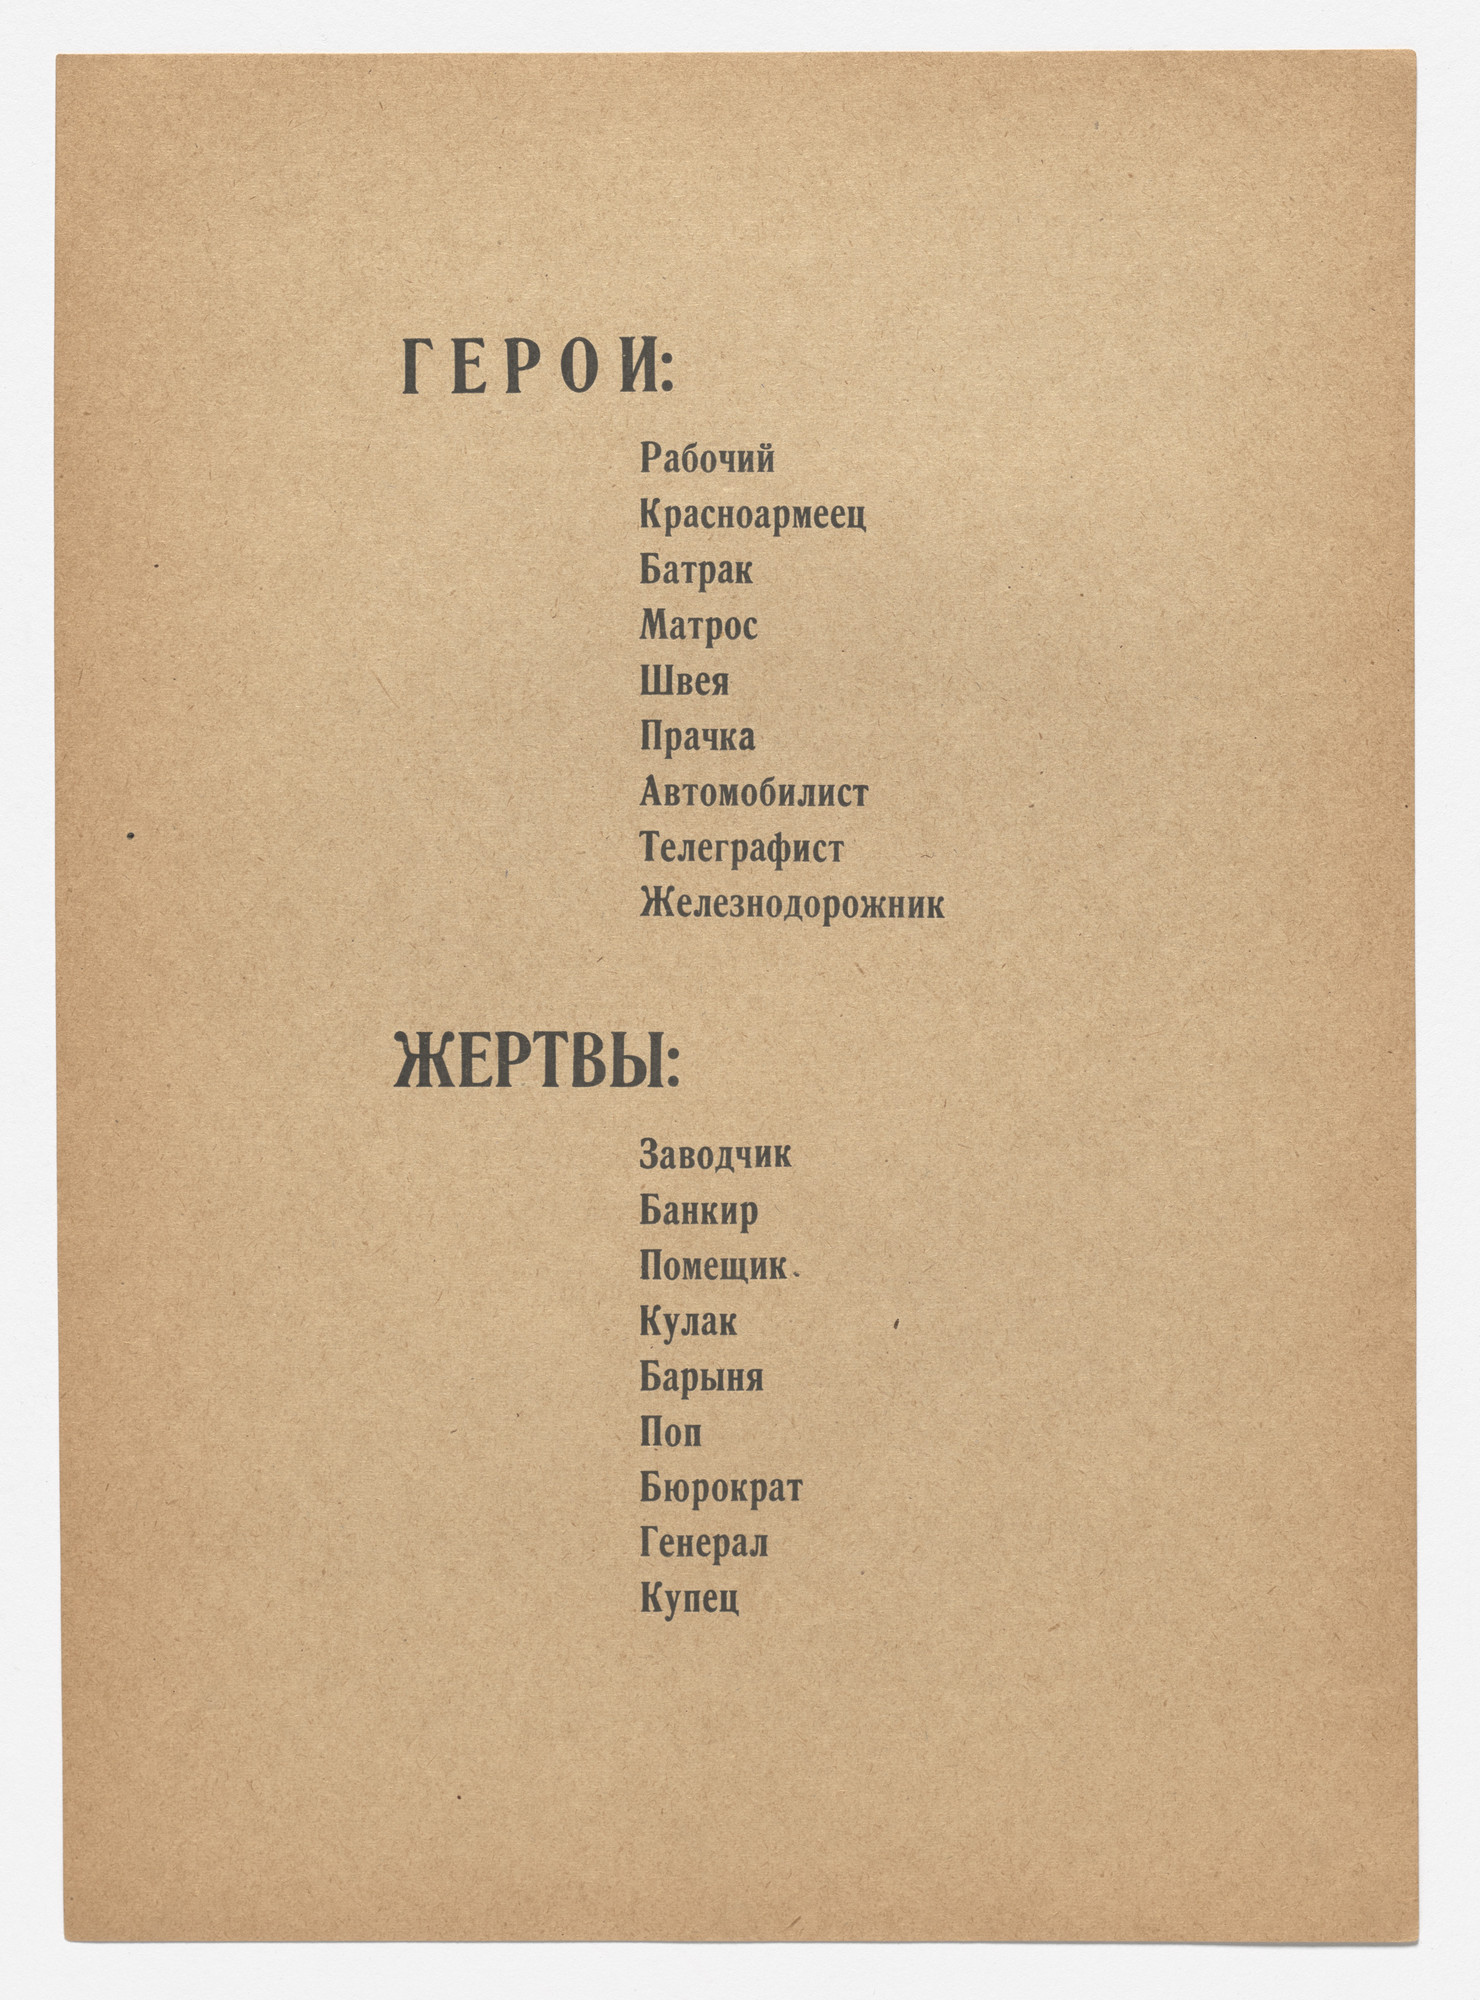 Various Artists, Kseniia Boguslavskaia, Vladimir Kozlinskii, Sergei Makletsov, Jean Pougny (Ivan Puni). Colophon from Geroi i zhertvy revoliutsii. Oktiabr' 1917-1918 (Heroes and Victims of the Revolution: October 1917-1918). 1918